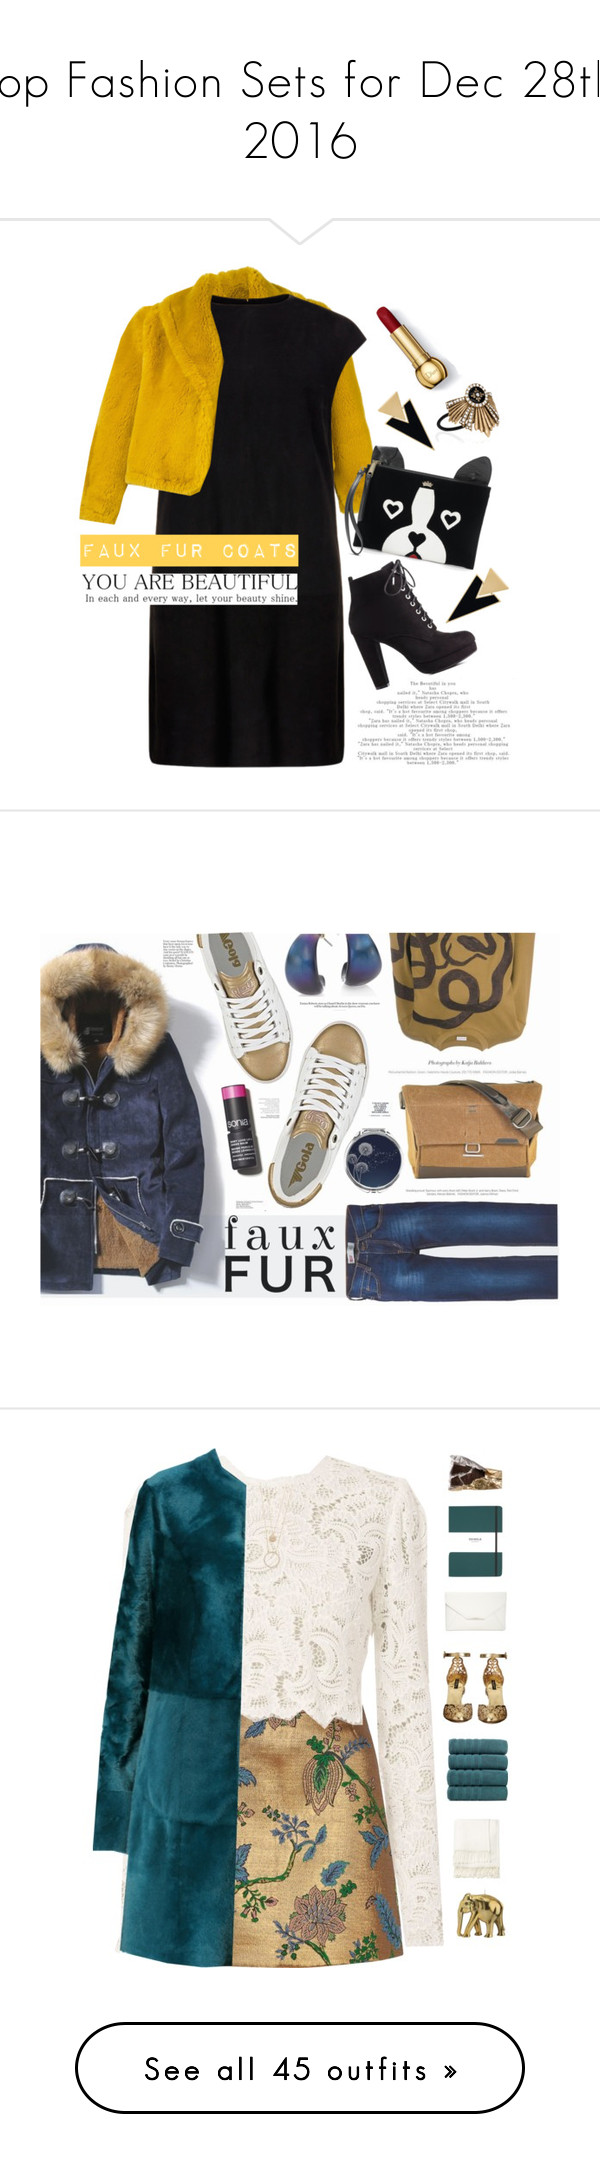 """Top Fashion Sets for Dec 28th, 2016"" by polyvore ❤ liked on Polyvore featuring Jean-Paul Gaultier, MuuBaa, Chloe + Isabel, Yves Saint Laurent, Bamboo, Juicy Couture, fauxfurcoats, Levi's, Gola and Dries Van Noten"